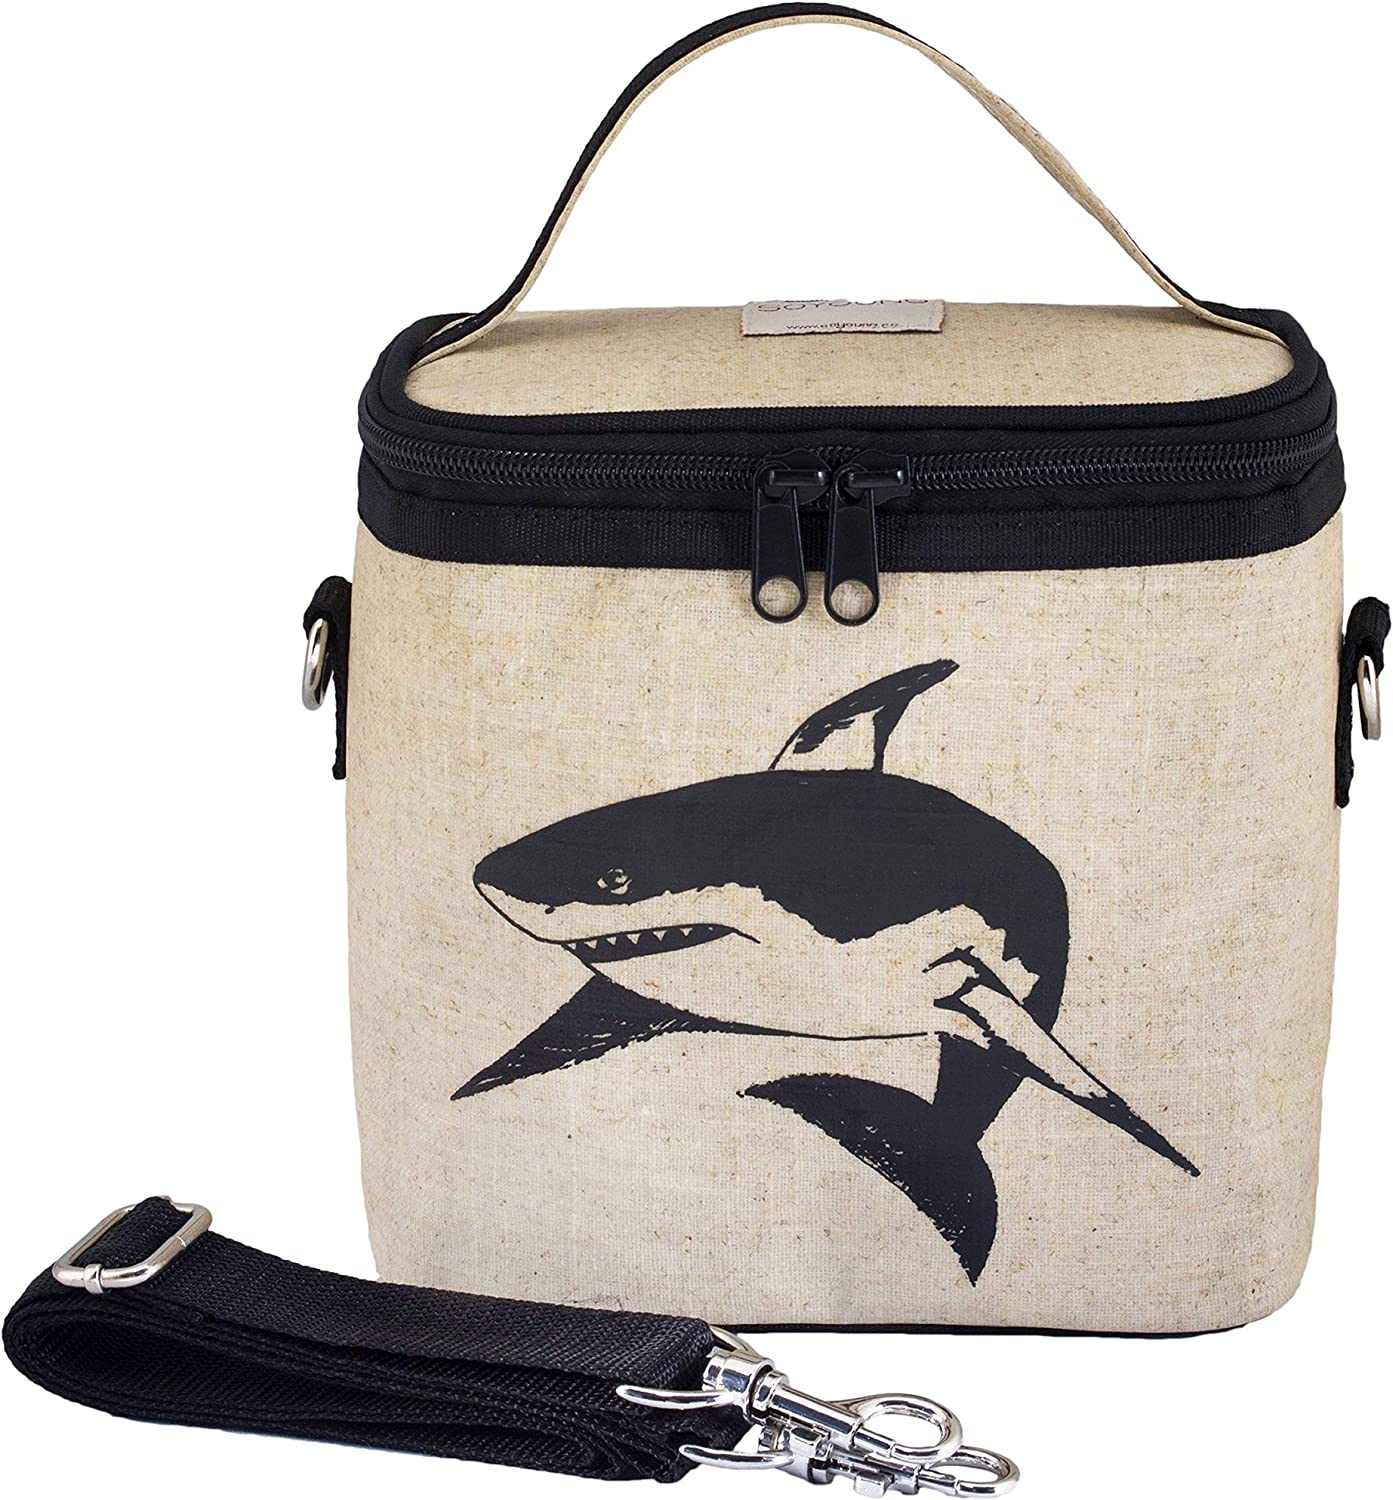 SoYoung Small Cooler Bag - Lunch - Raw Linen, Eco-Friendly, Retro-Inspired and Easy to Clean